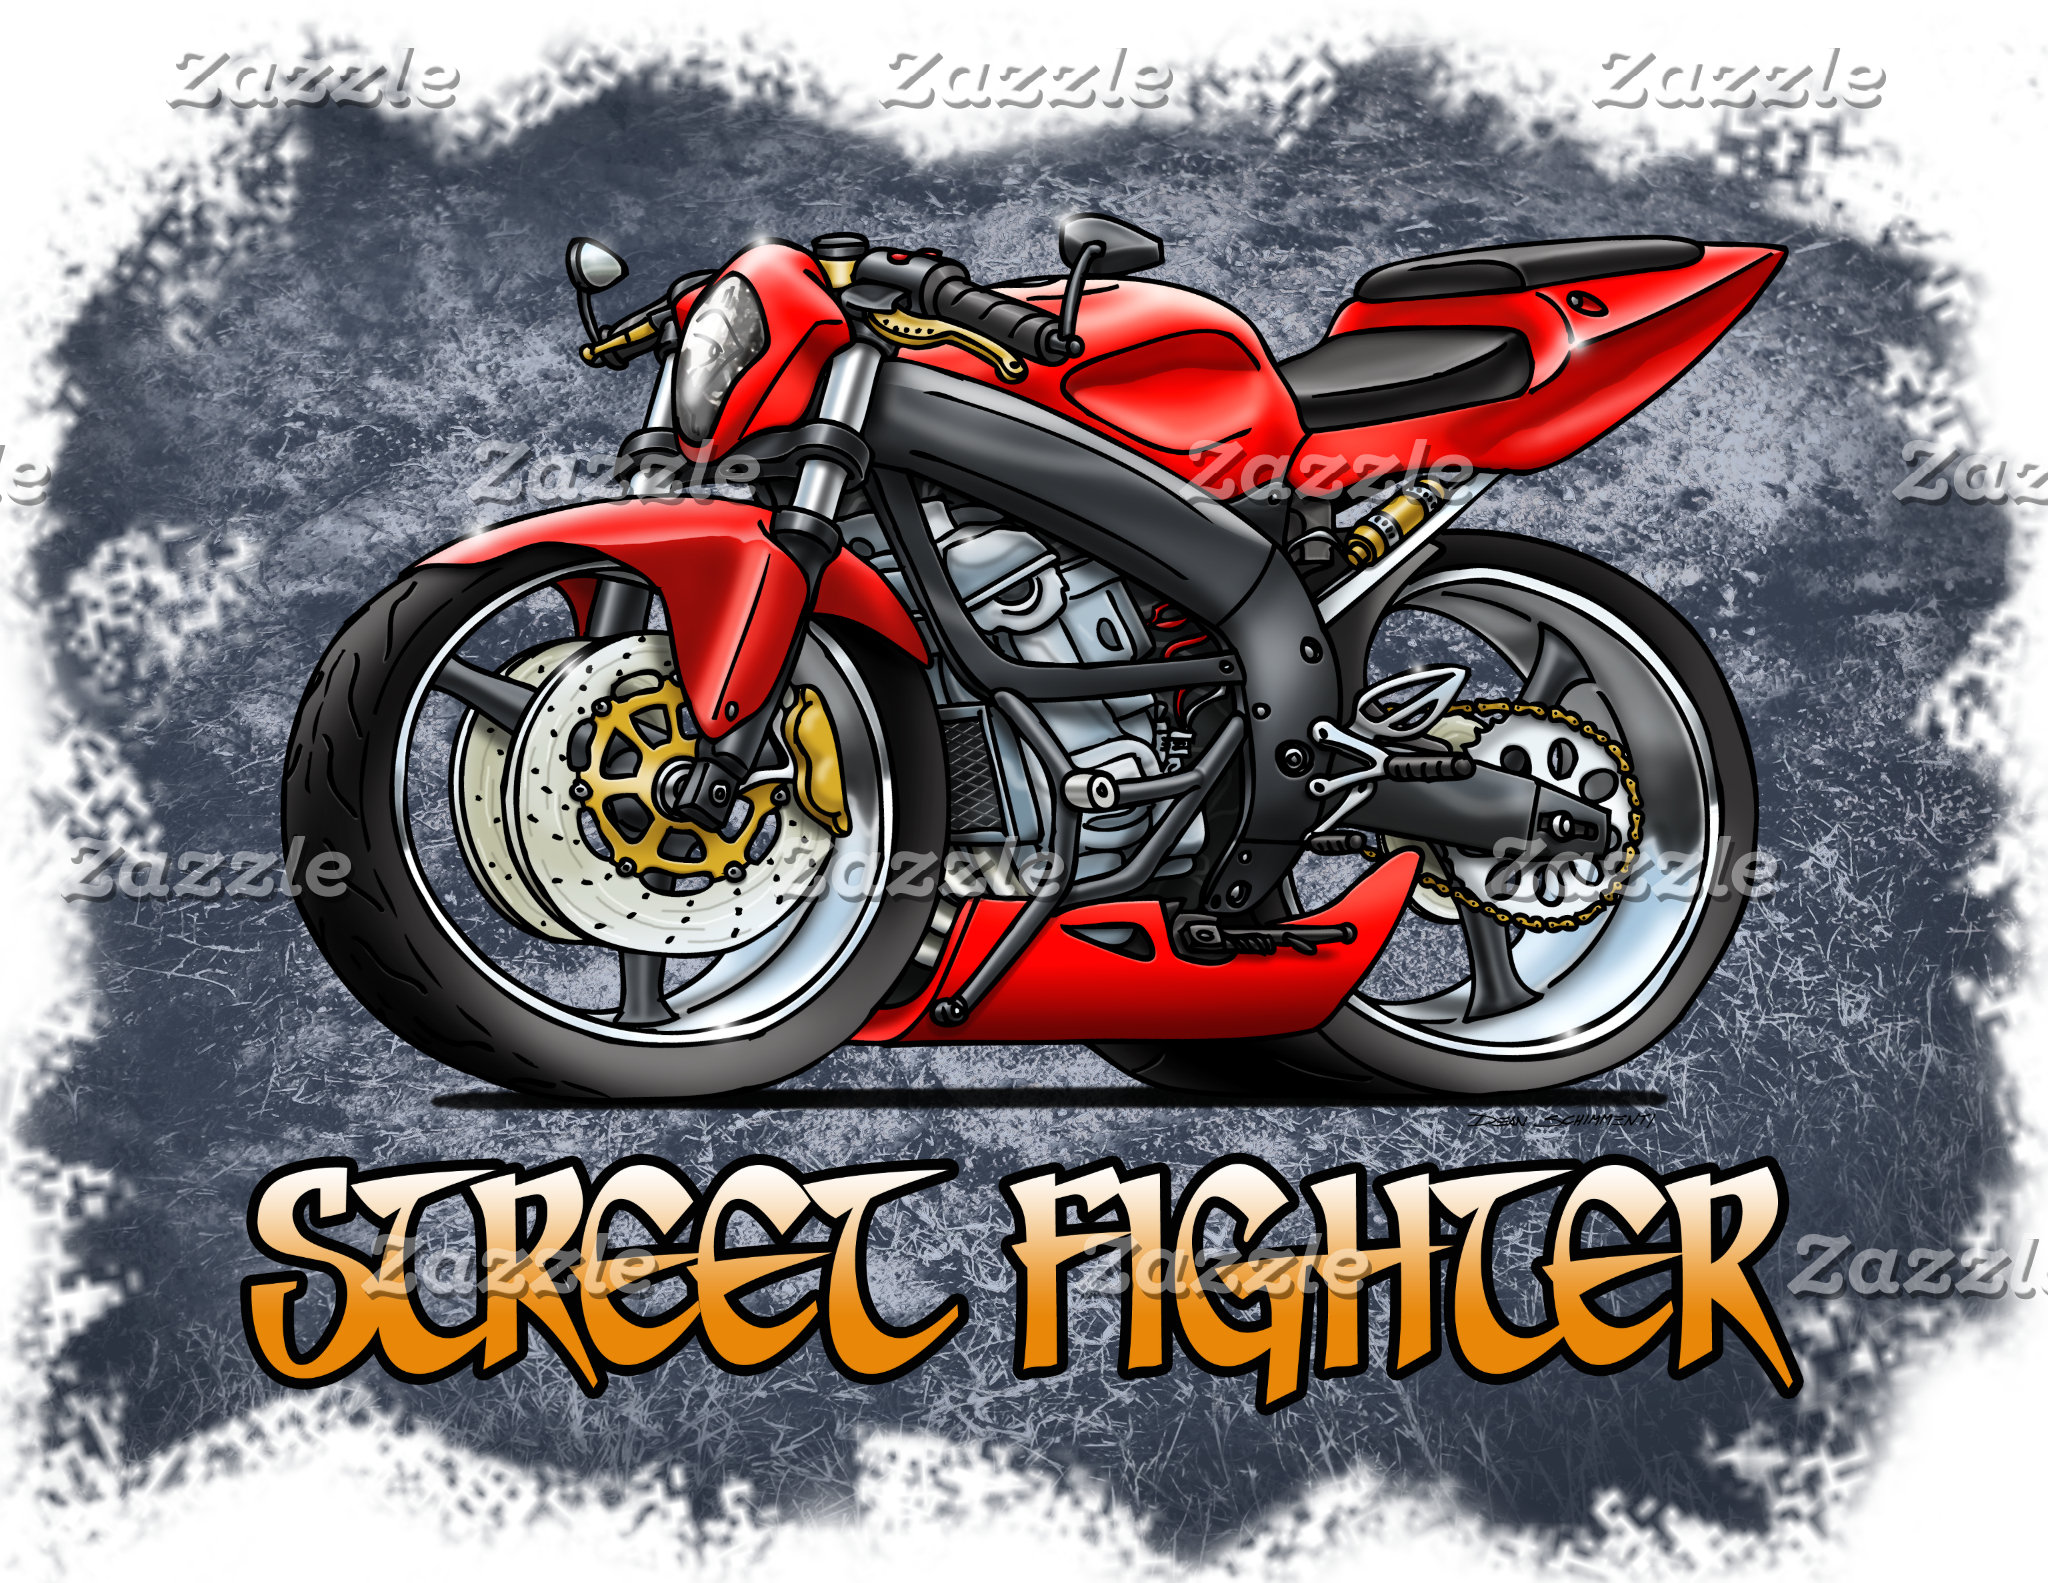 Street Fighter Motorcycle